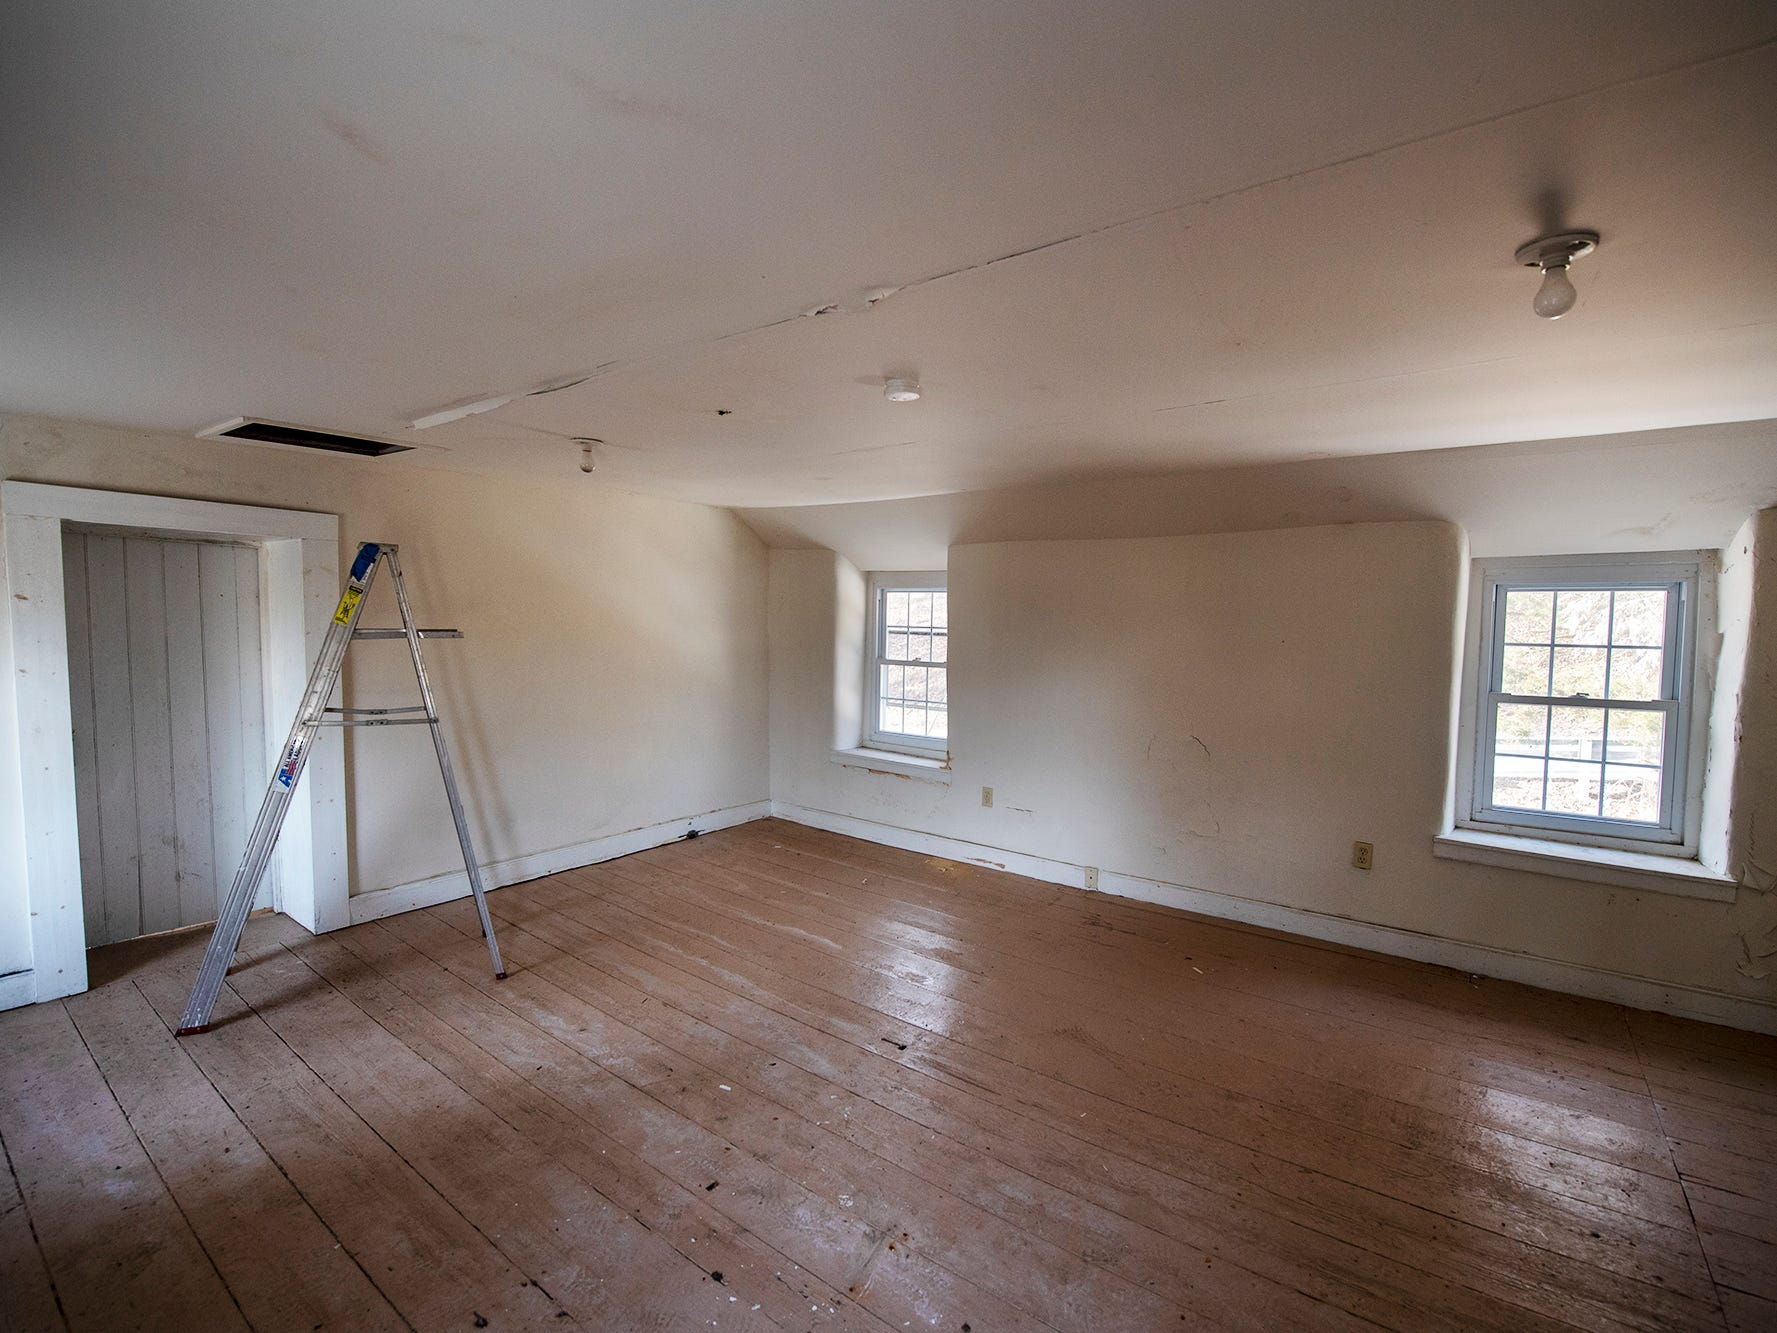 This is an upstairs room of the most recent Welsh quarrymen's cottage acquired in Peach Bottom Township February 19, 2019.